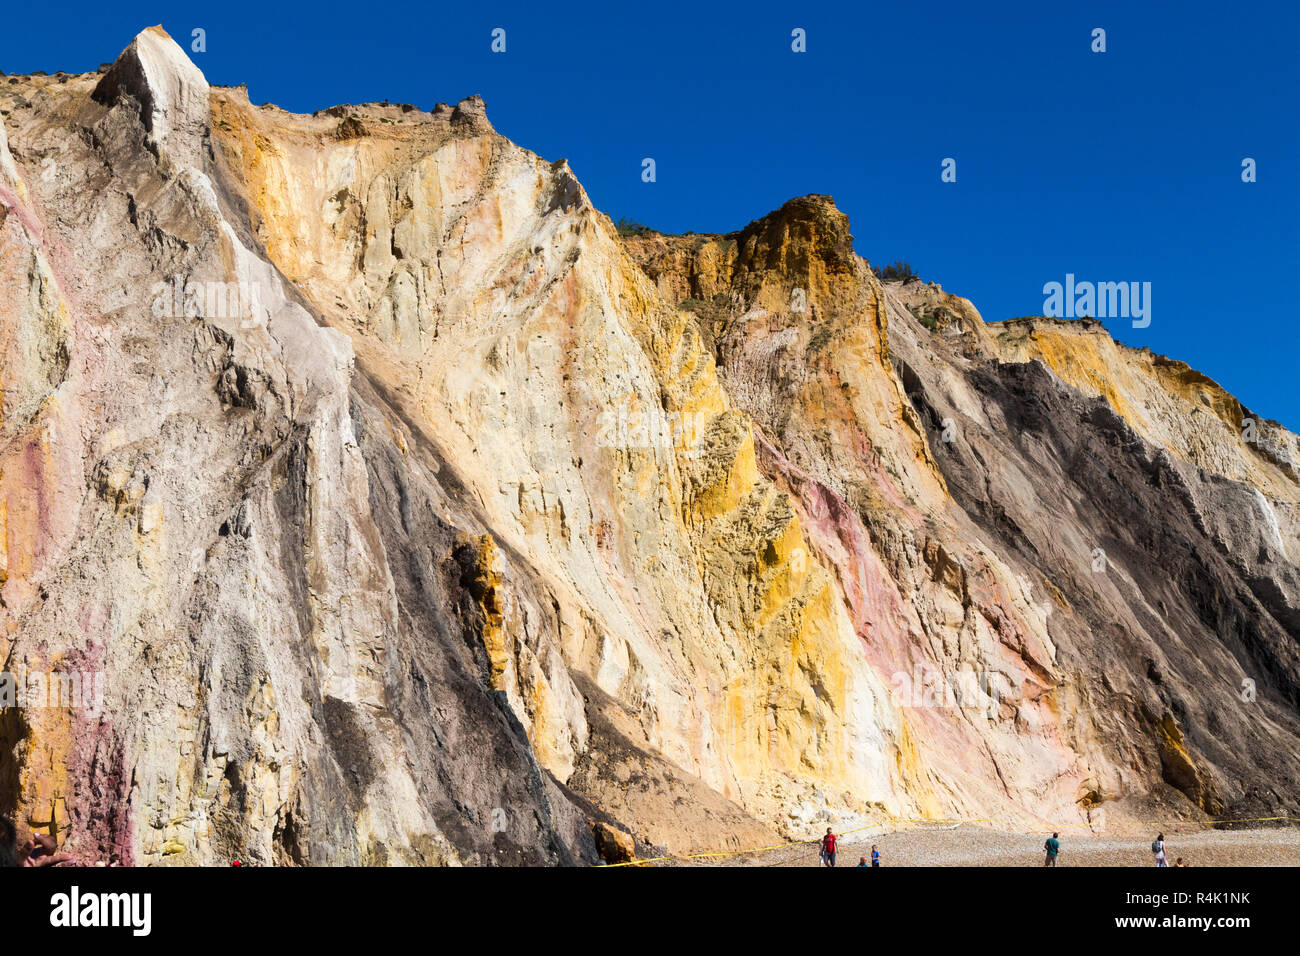 Famous multi coloured layered sands of the sandy cliffs of Alum Bay Cliffs. The different colours of sand can be clearly seen. The Needles. Isle of Wight. UK (98) - Stock Image